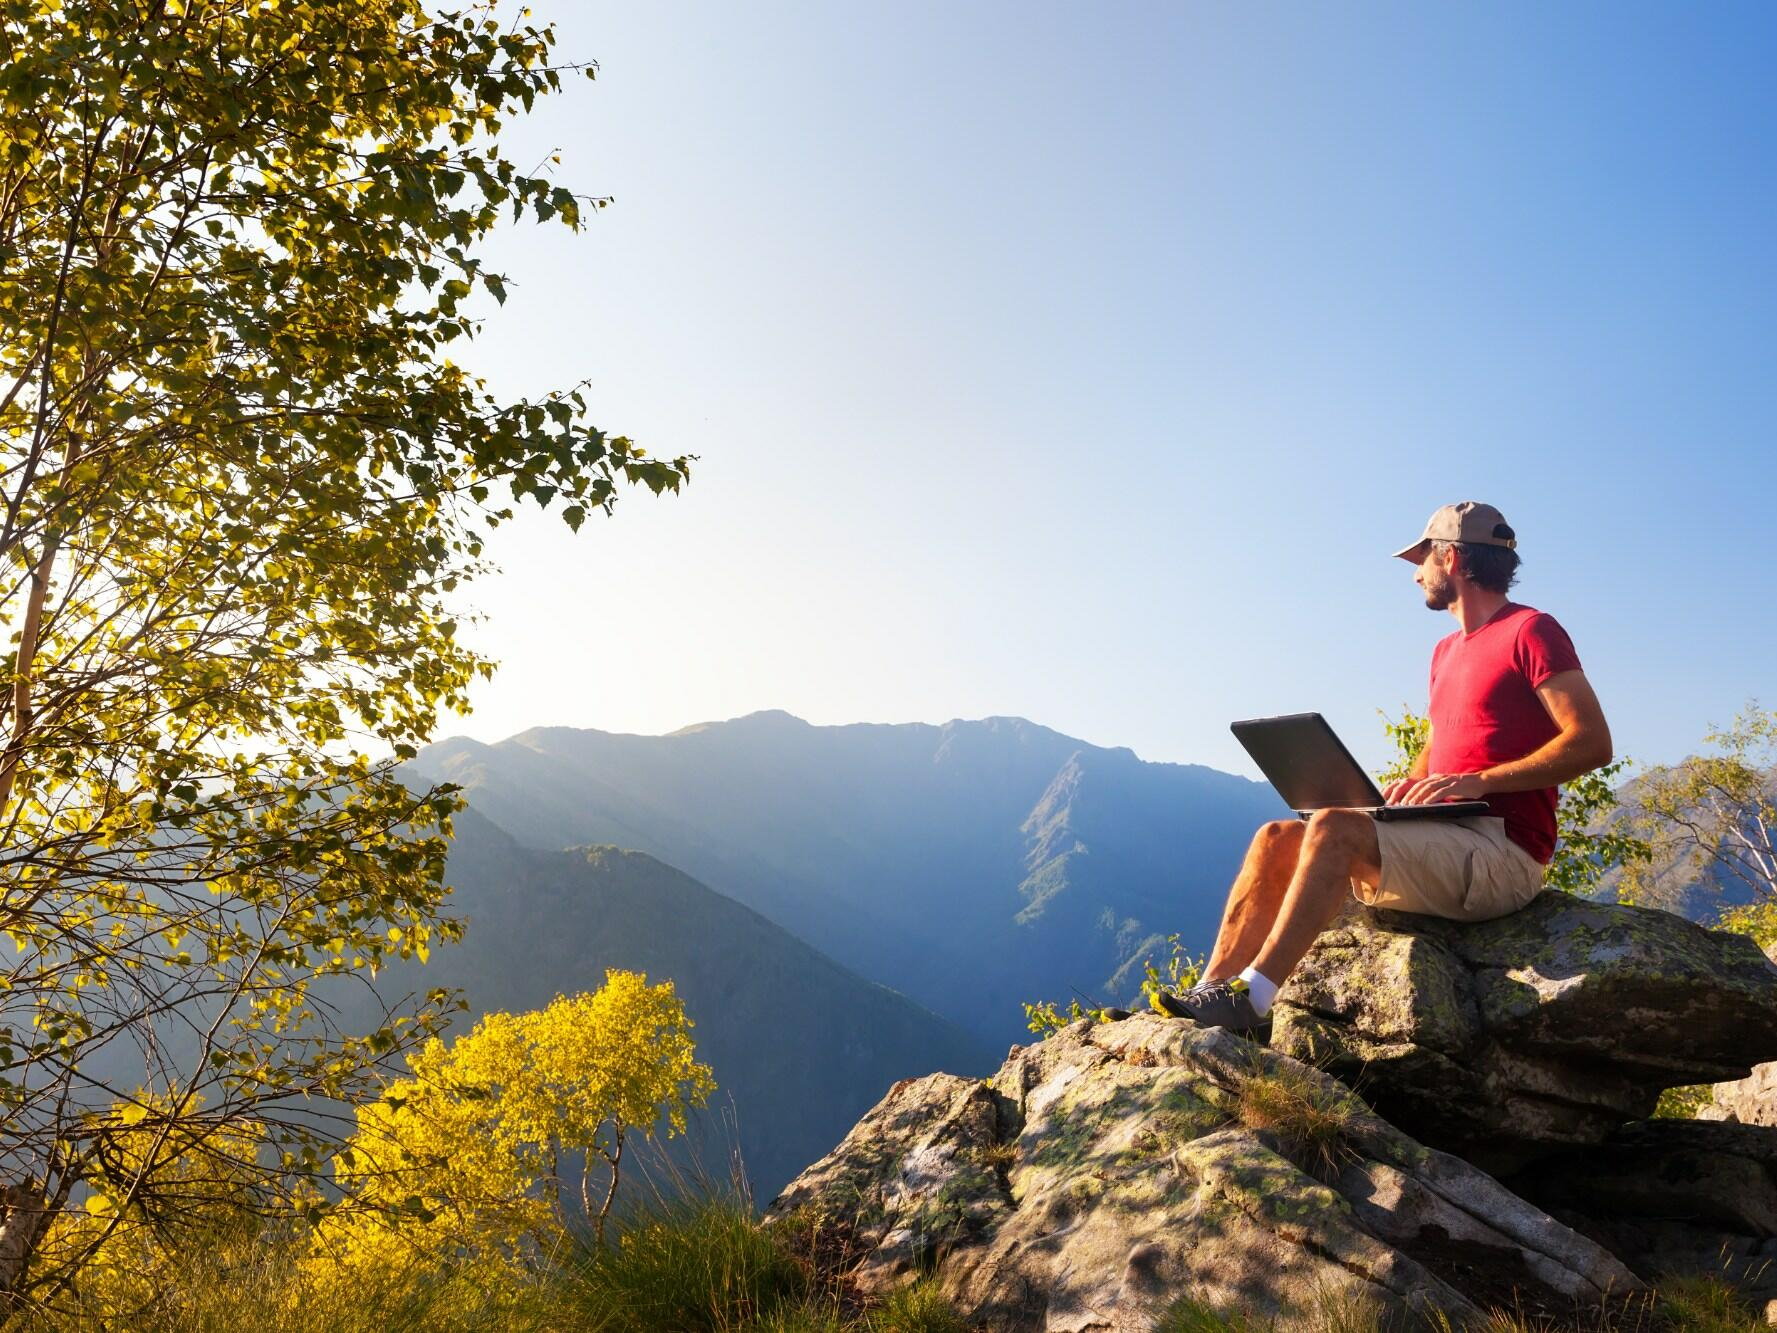 A man working on the laptop while sitting on top of a rock, enjoying the view